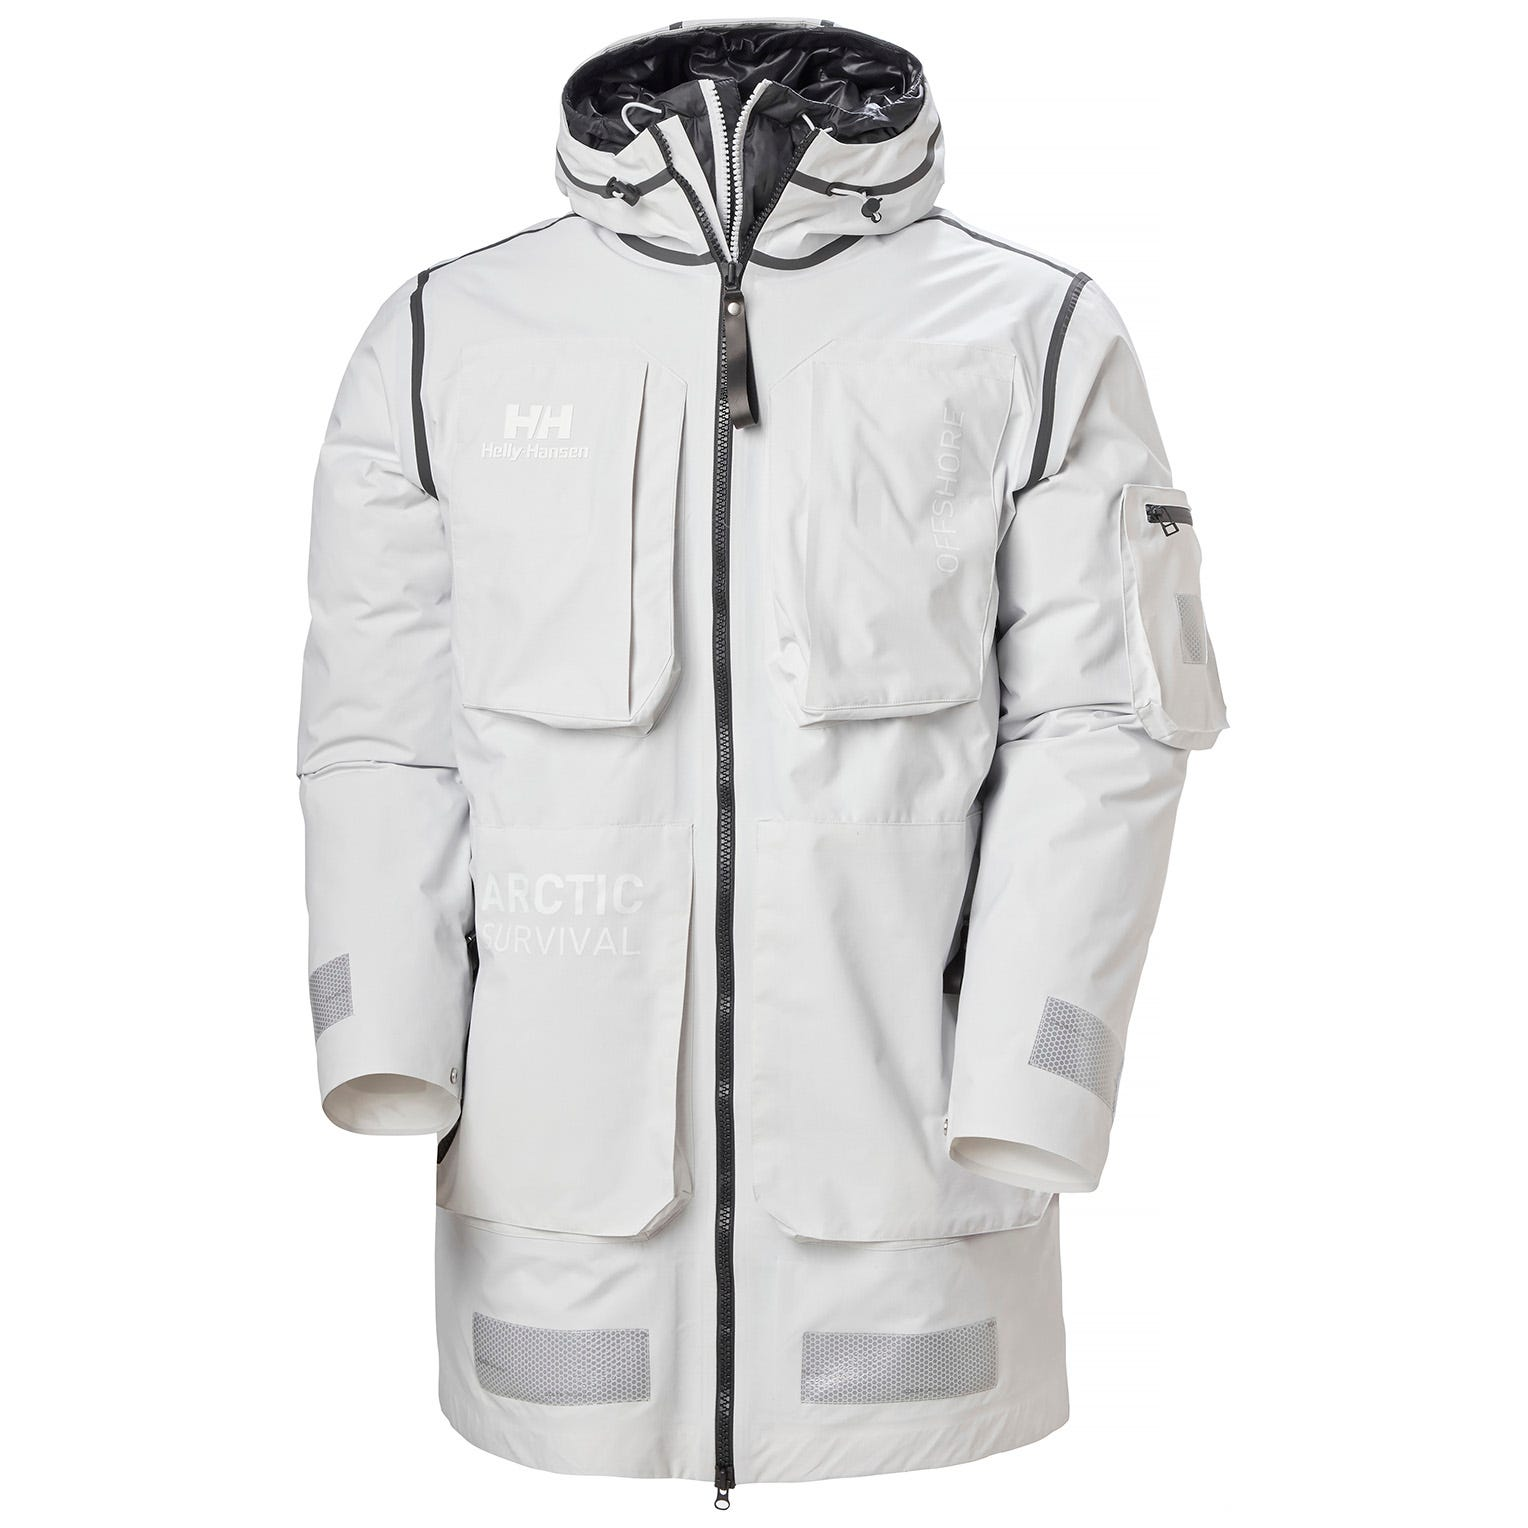 Helly Hansen Arc Survival 3 In 1 Coat Parka White S